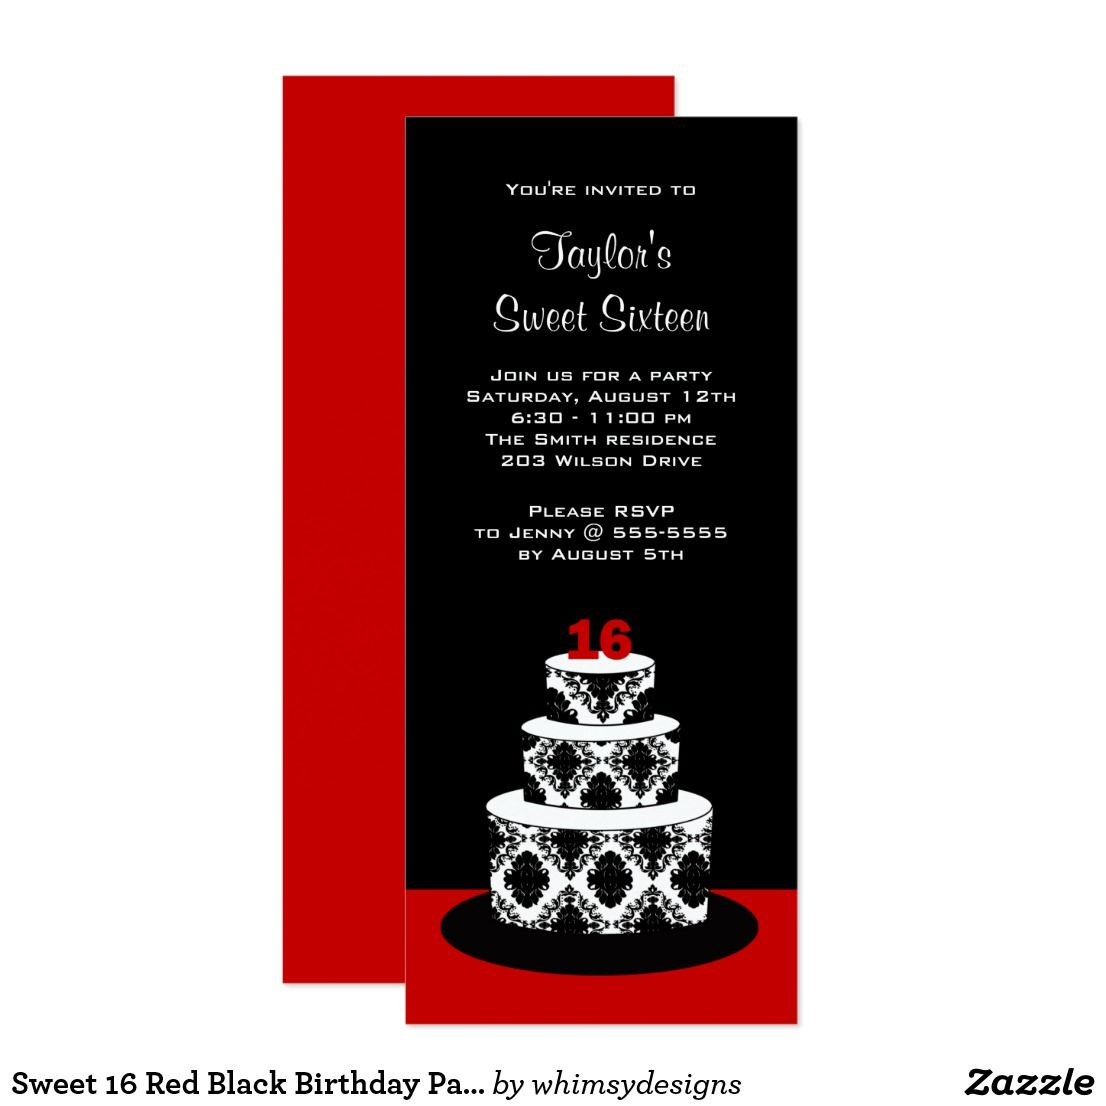 sweet 16 red black birthday party invitations birthday sweet